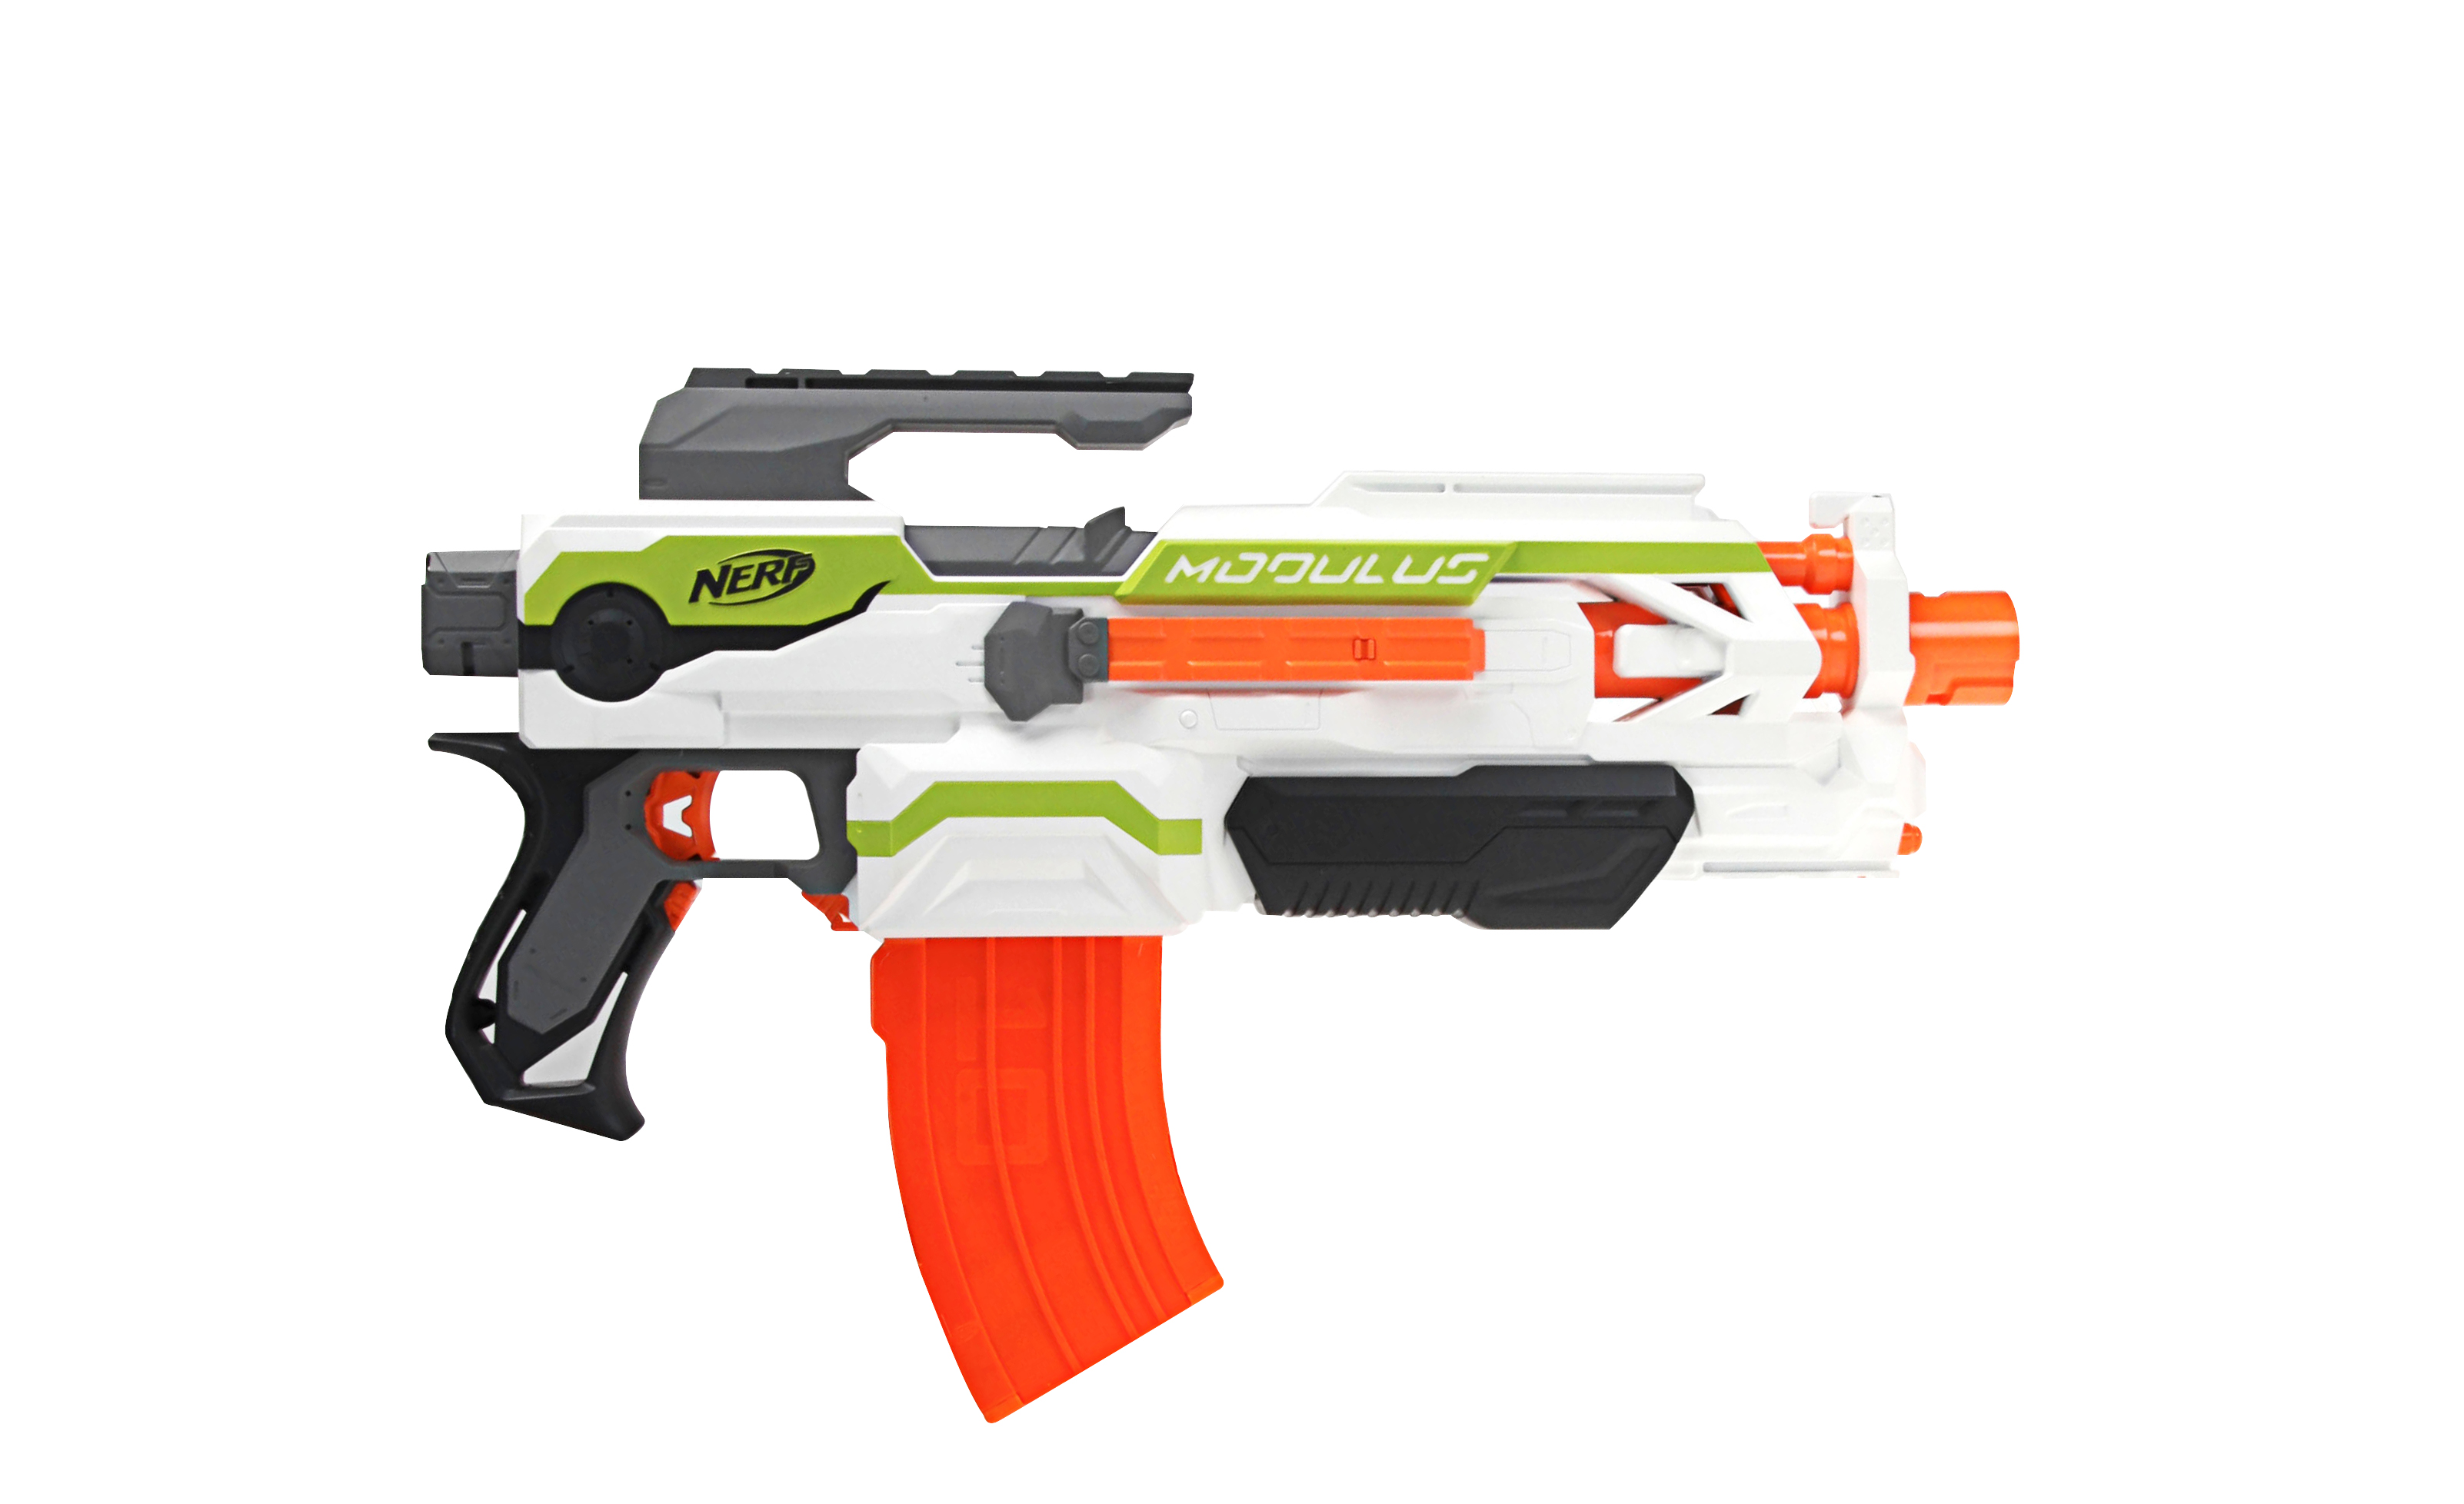 The Nerf Modulus in 2015